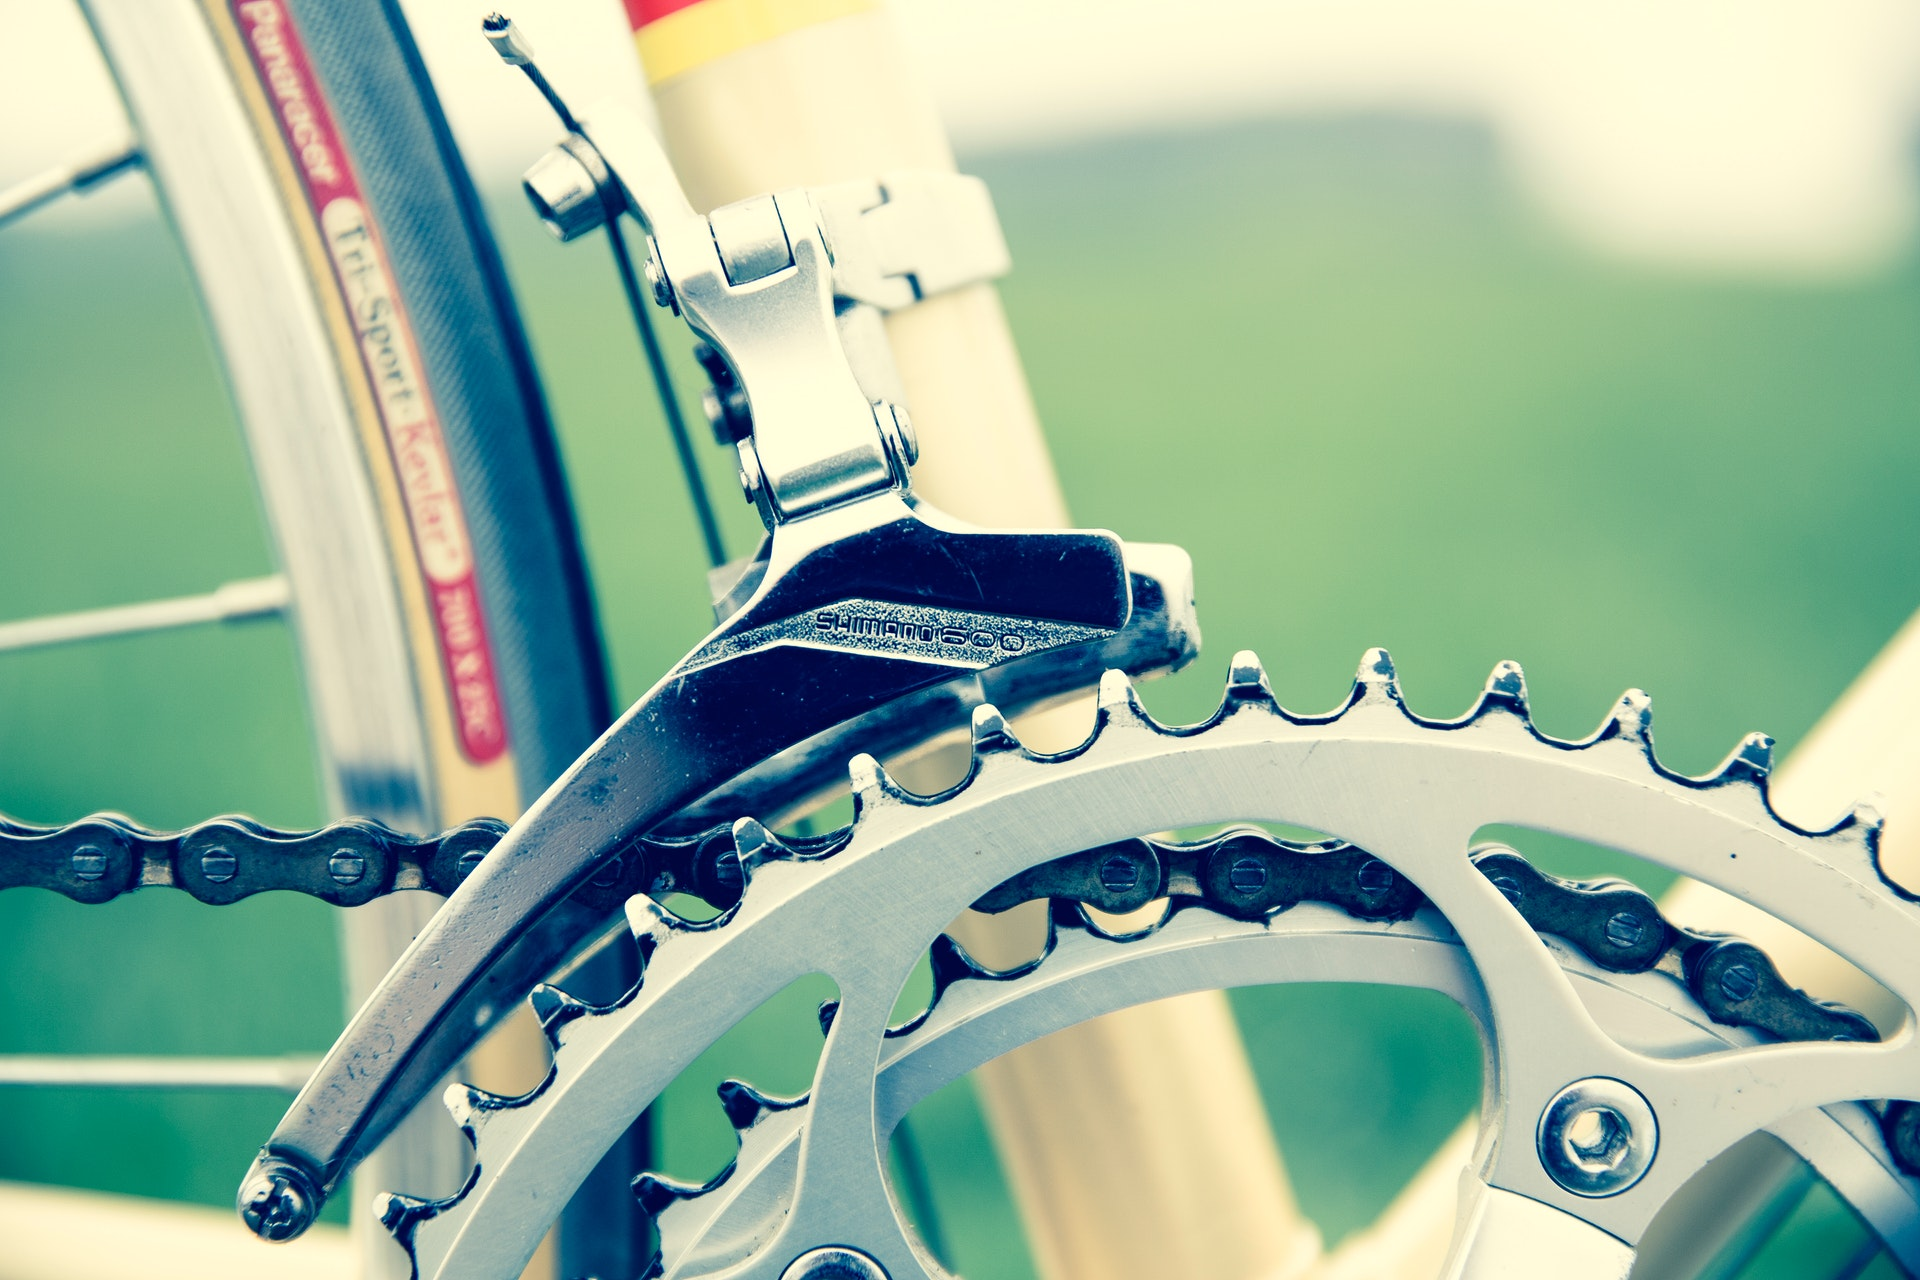 bicycle-chainrings-close-up-93777